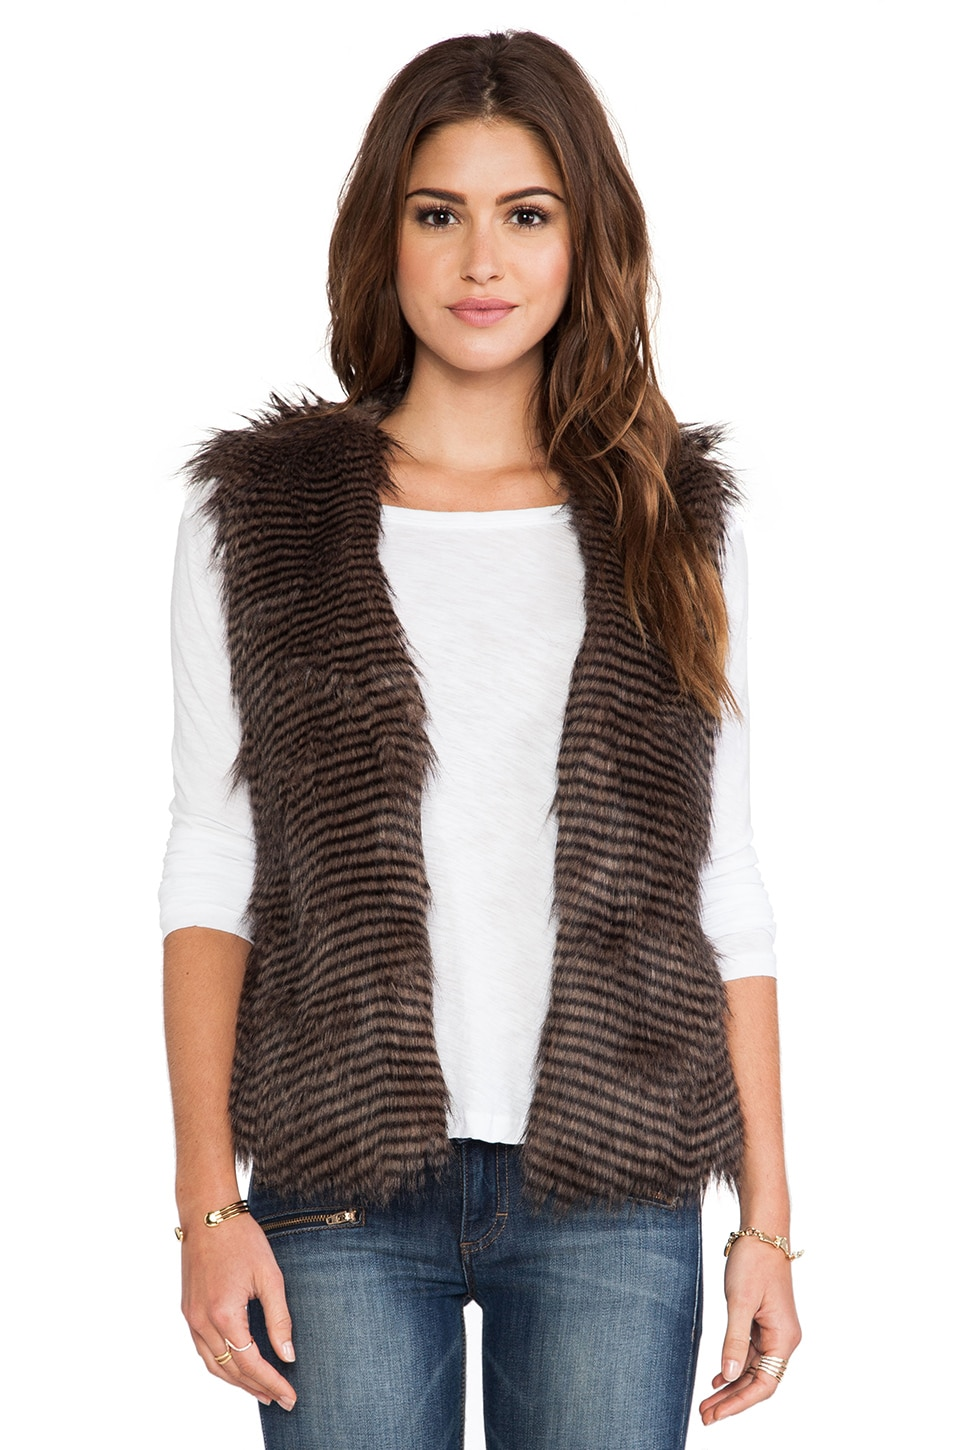 BB Dakota Duda Faux Fur Vest in Brown Multi